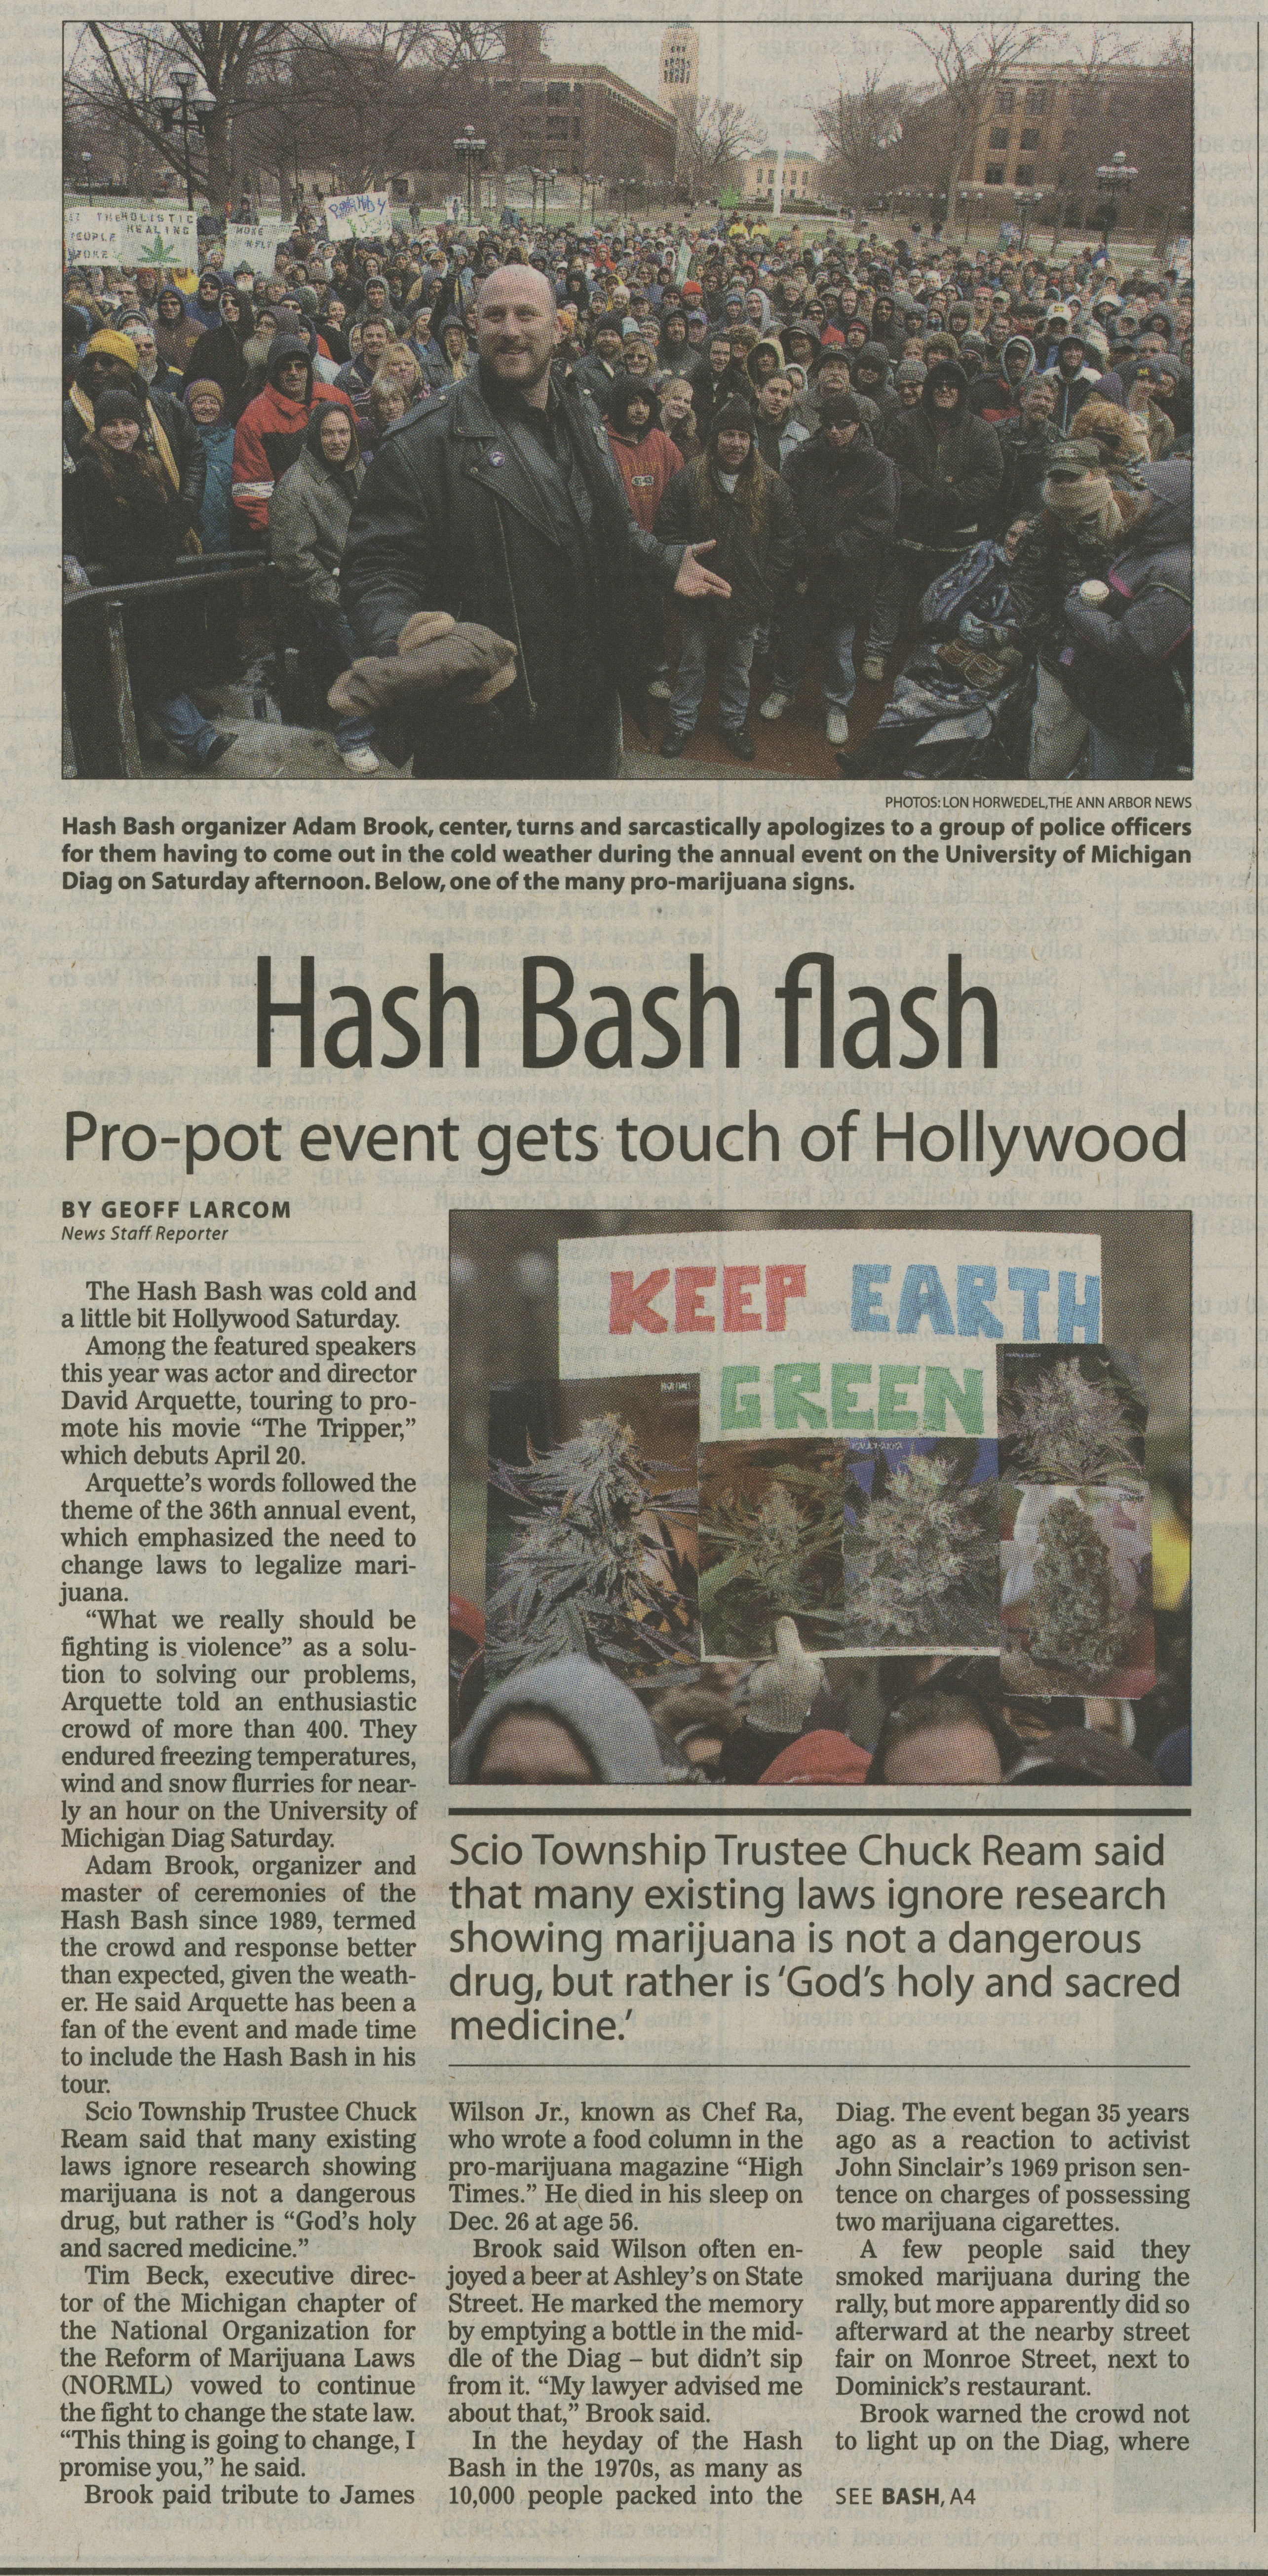 Hash Bash Flash image